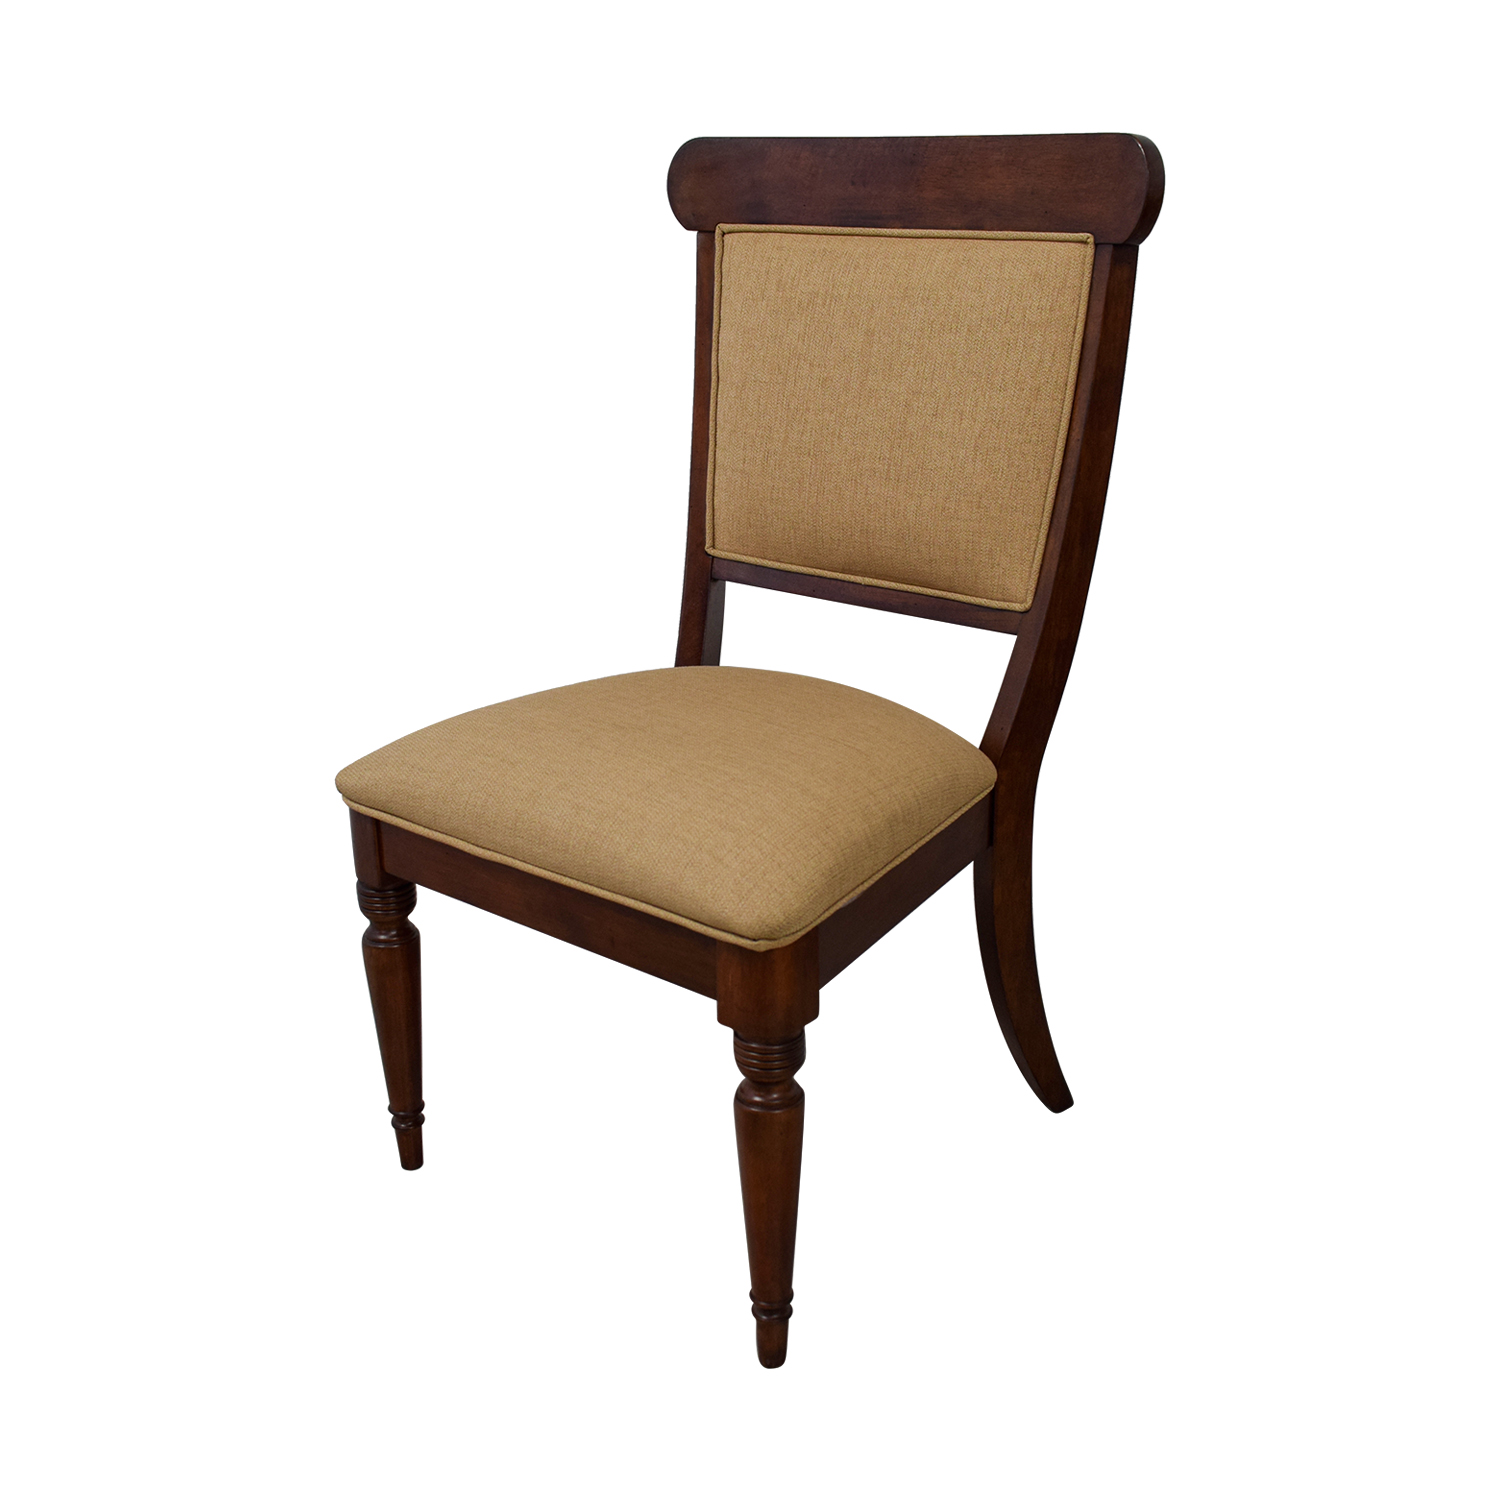 buy Macy's Macy's Wood Extendable Dining Set with Upholstered Chairs online